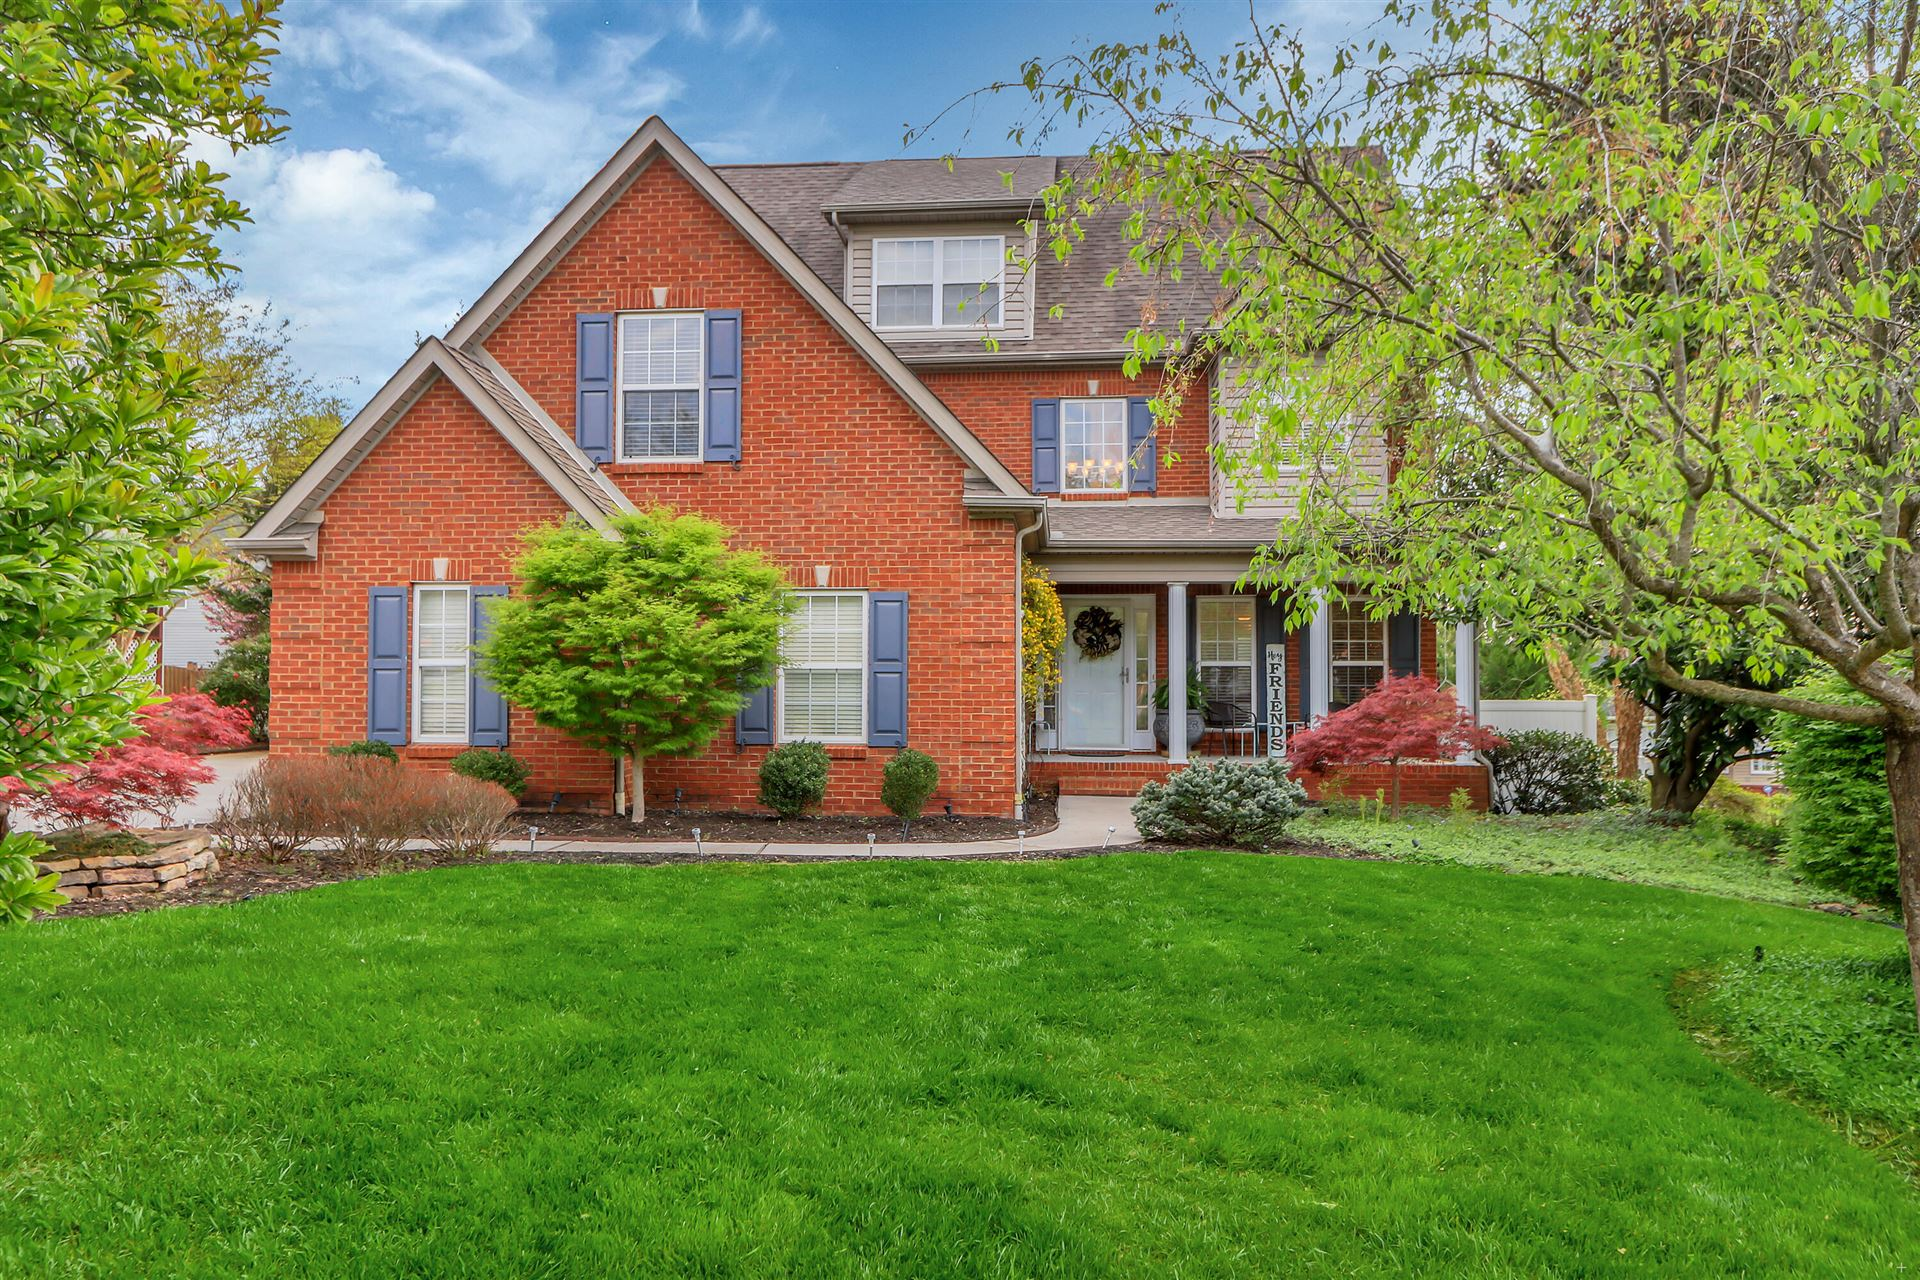 12944 Peach View Drive, Knoxville, TN 37922 - MLS#: 1148958